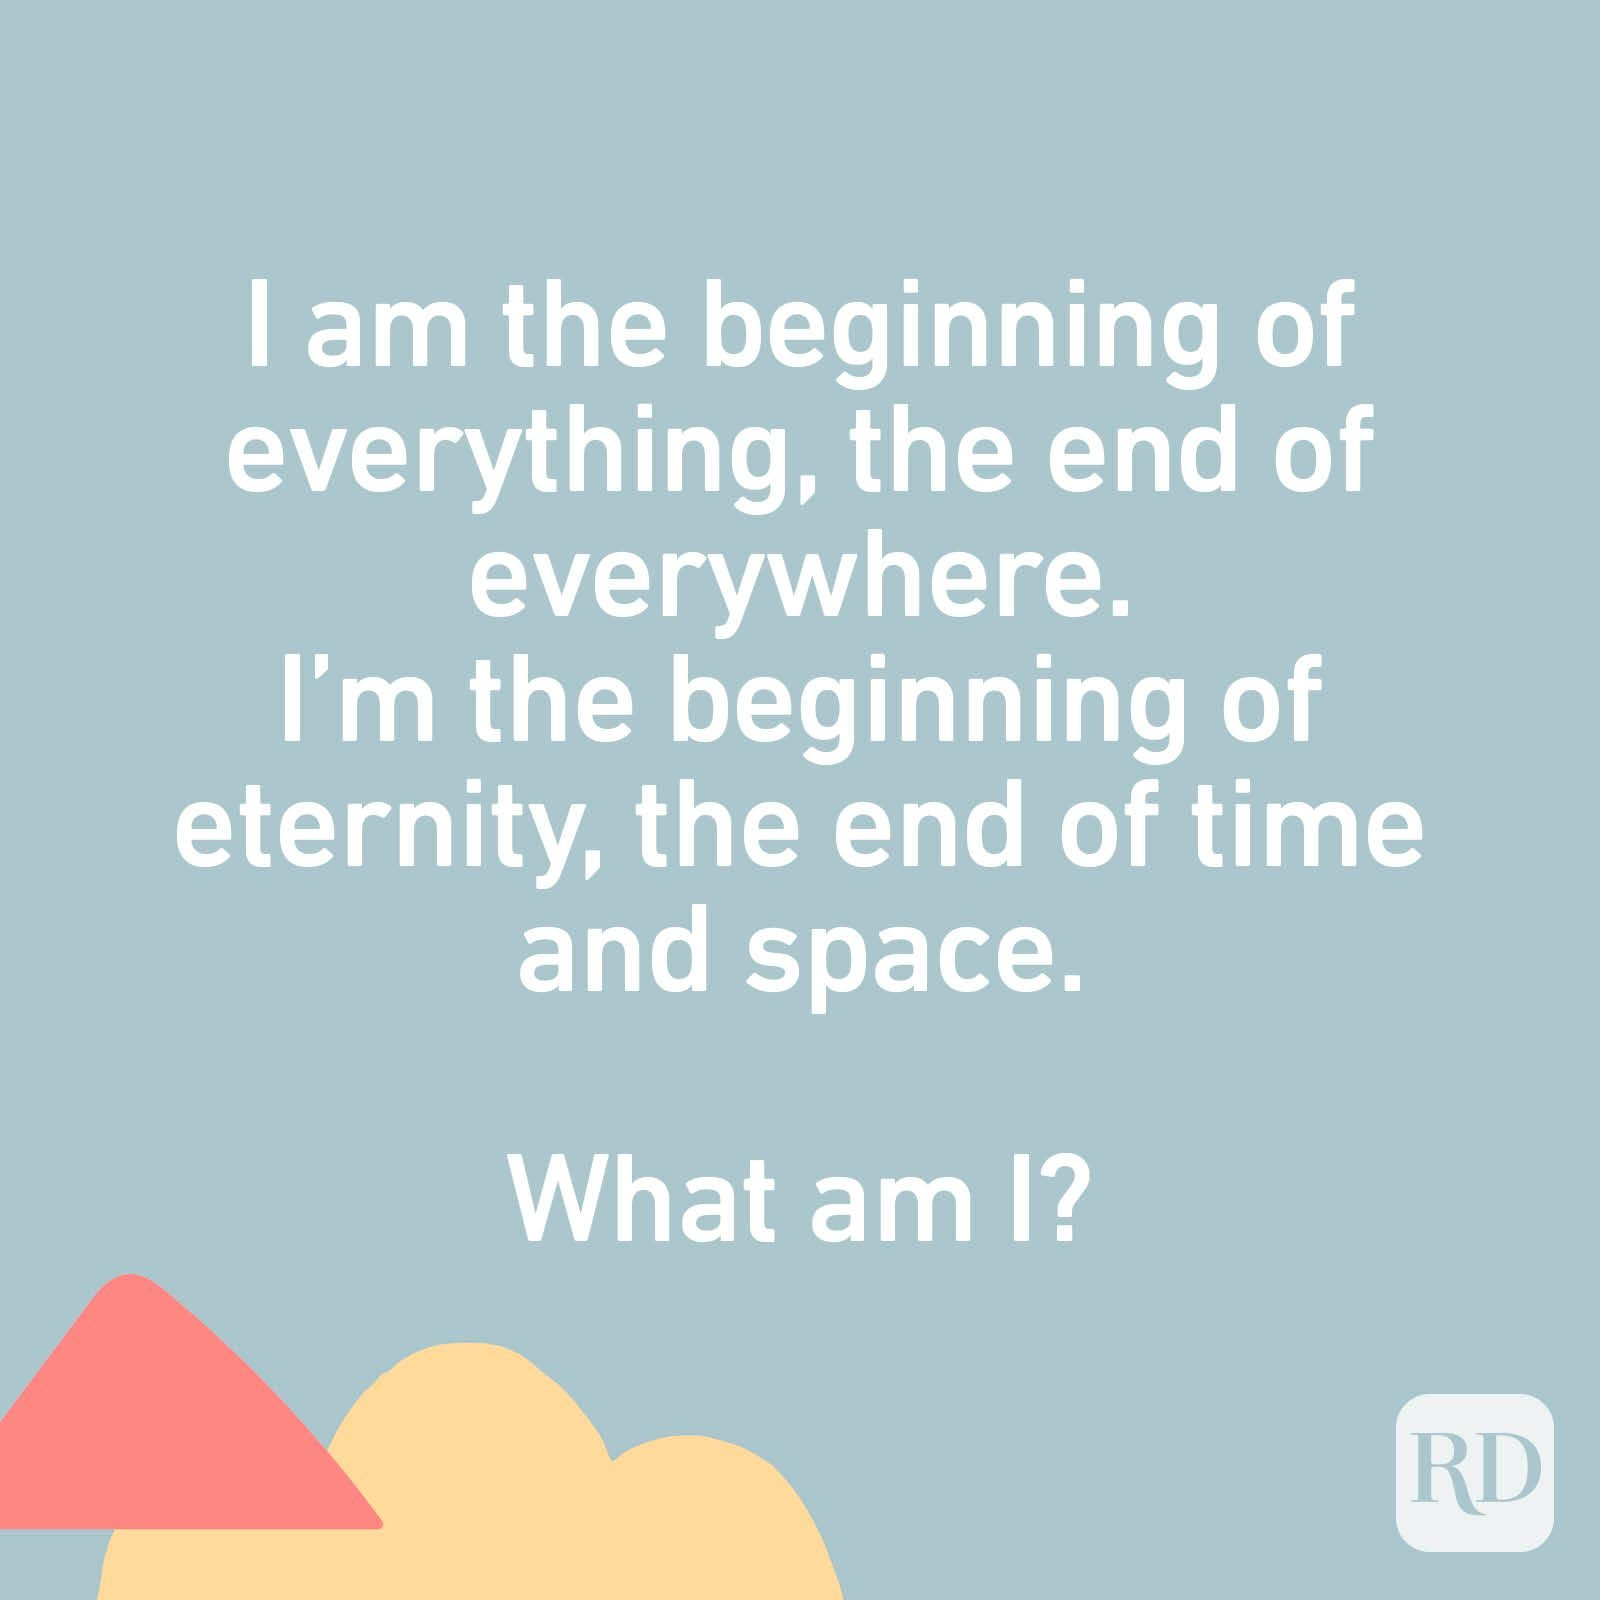 I am the beginning of everything, the end of everywhere. I'm the beginning of eternity, the end of time and space. What am I?